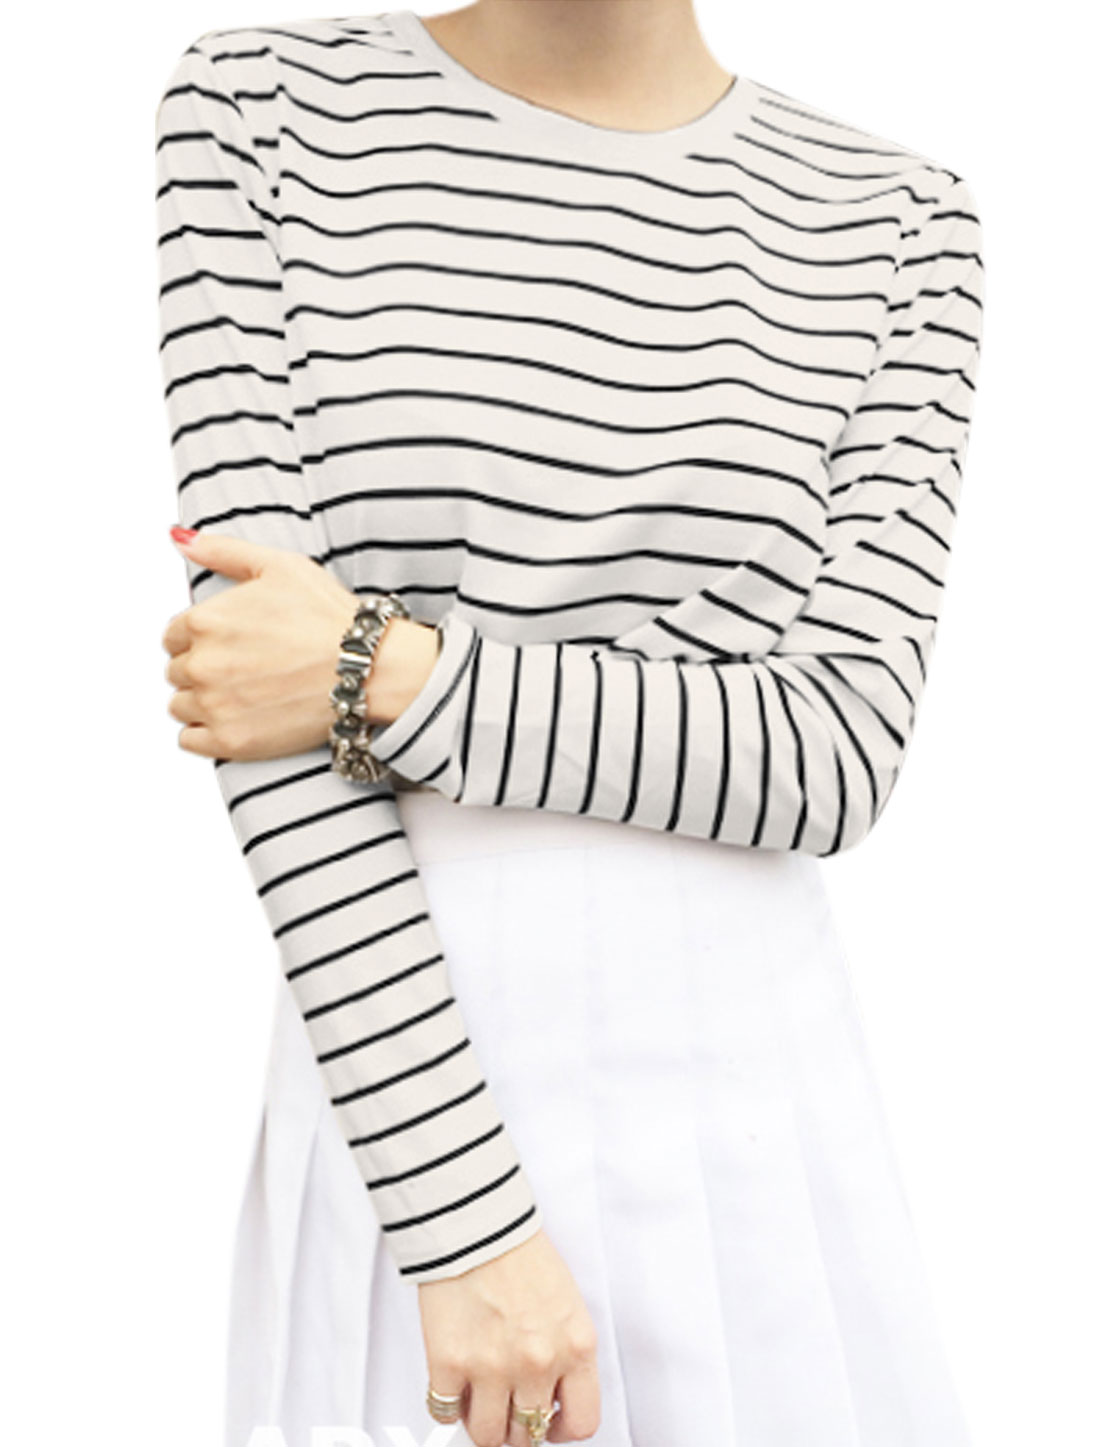 Lady Slipover Long Sleeve Bar Striped Leisure T-shirt White XS